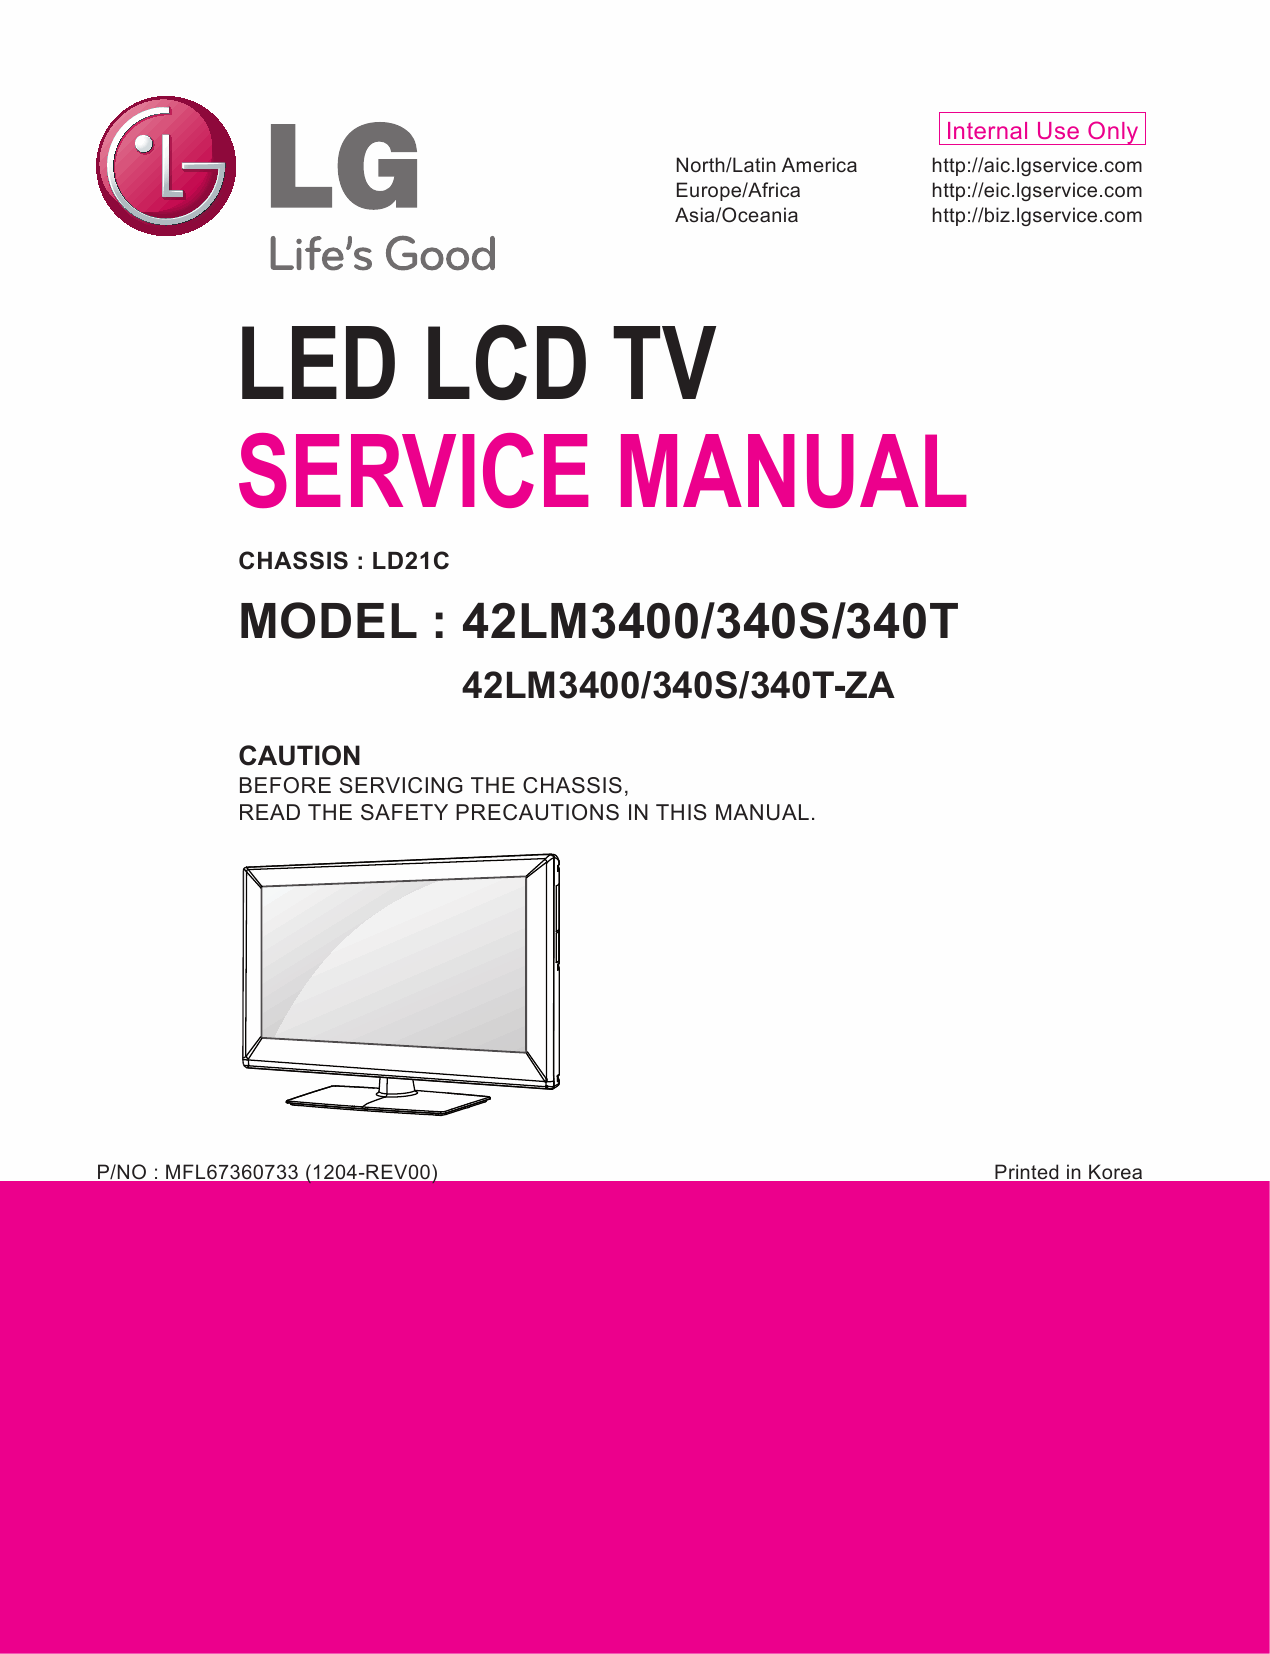 LG_LCD_TV_42LM3400_340S_340T_Service_Manual_2012_Qmanual.com-1